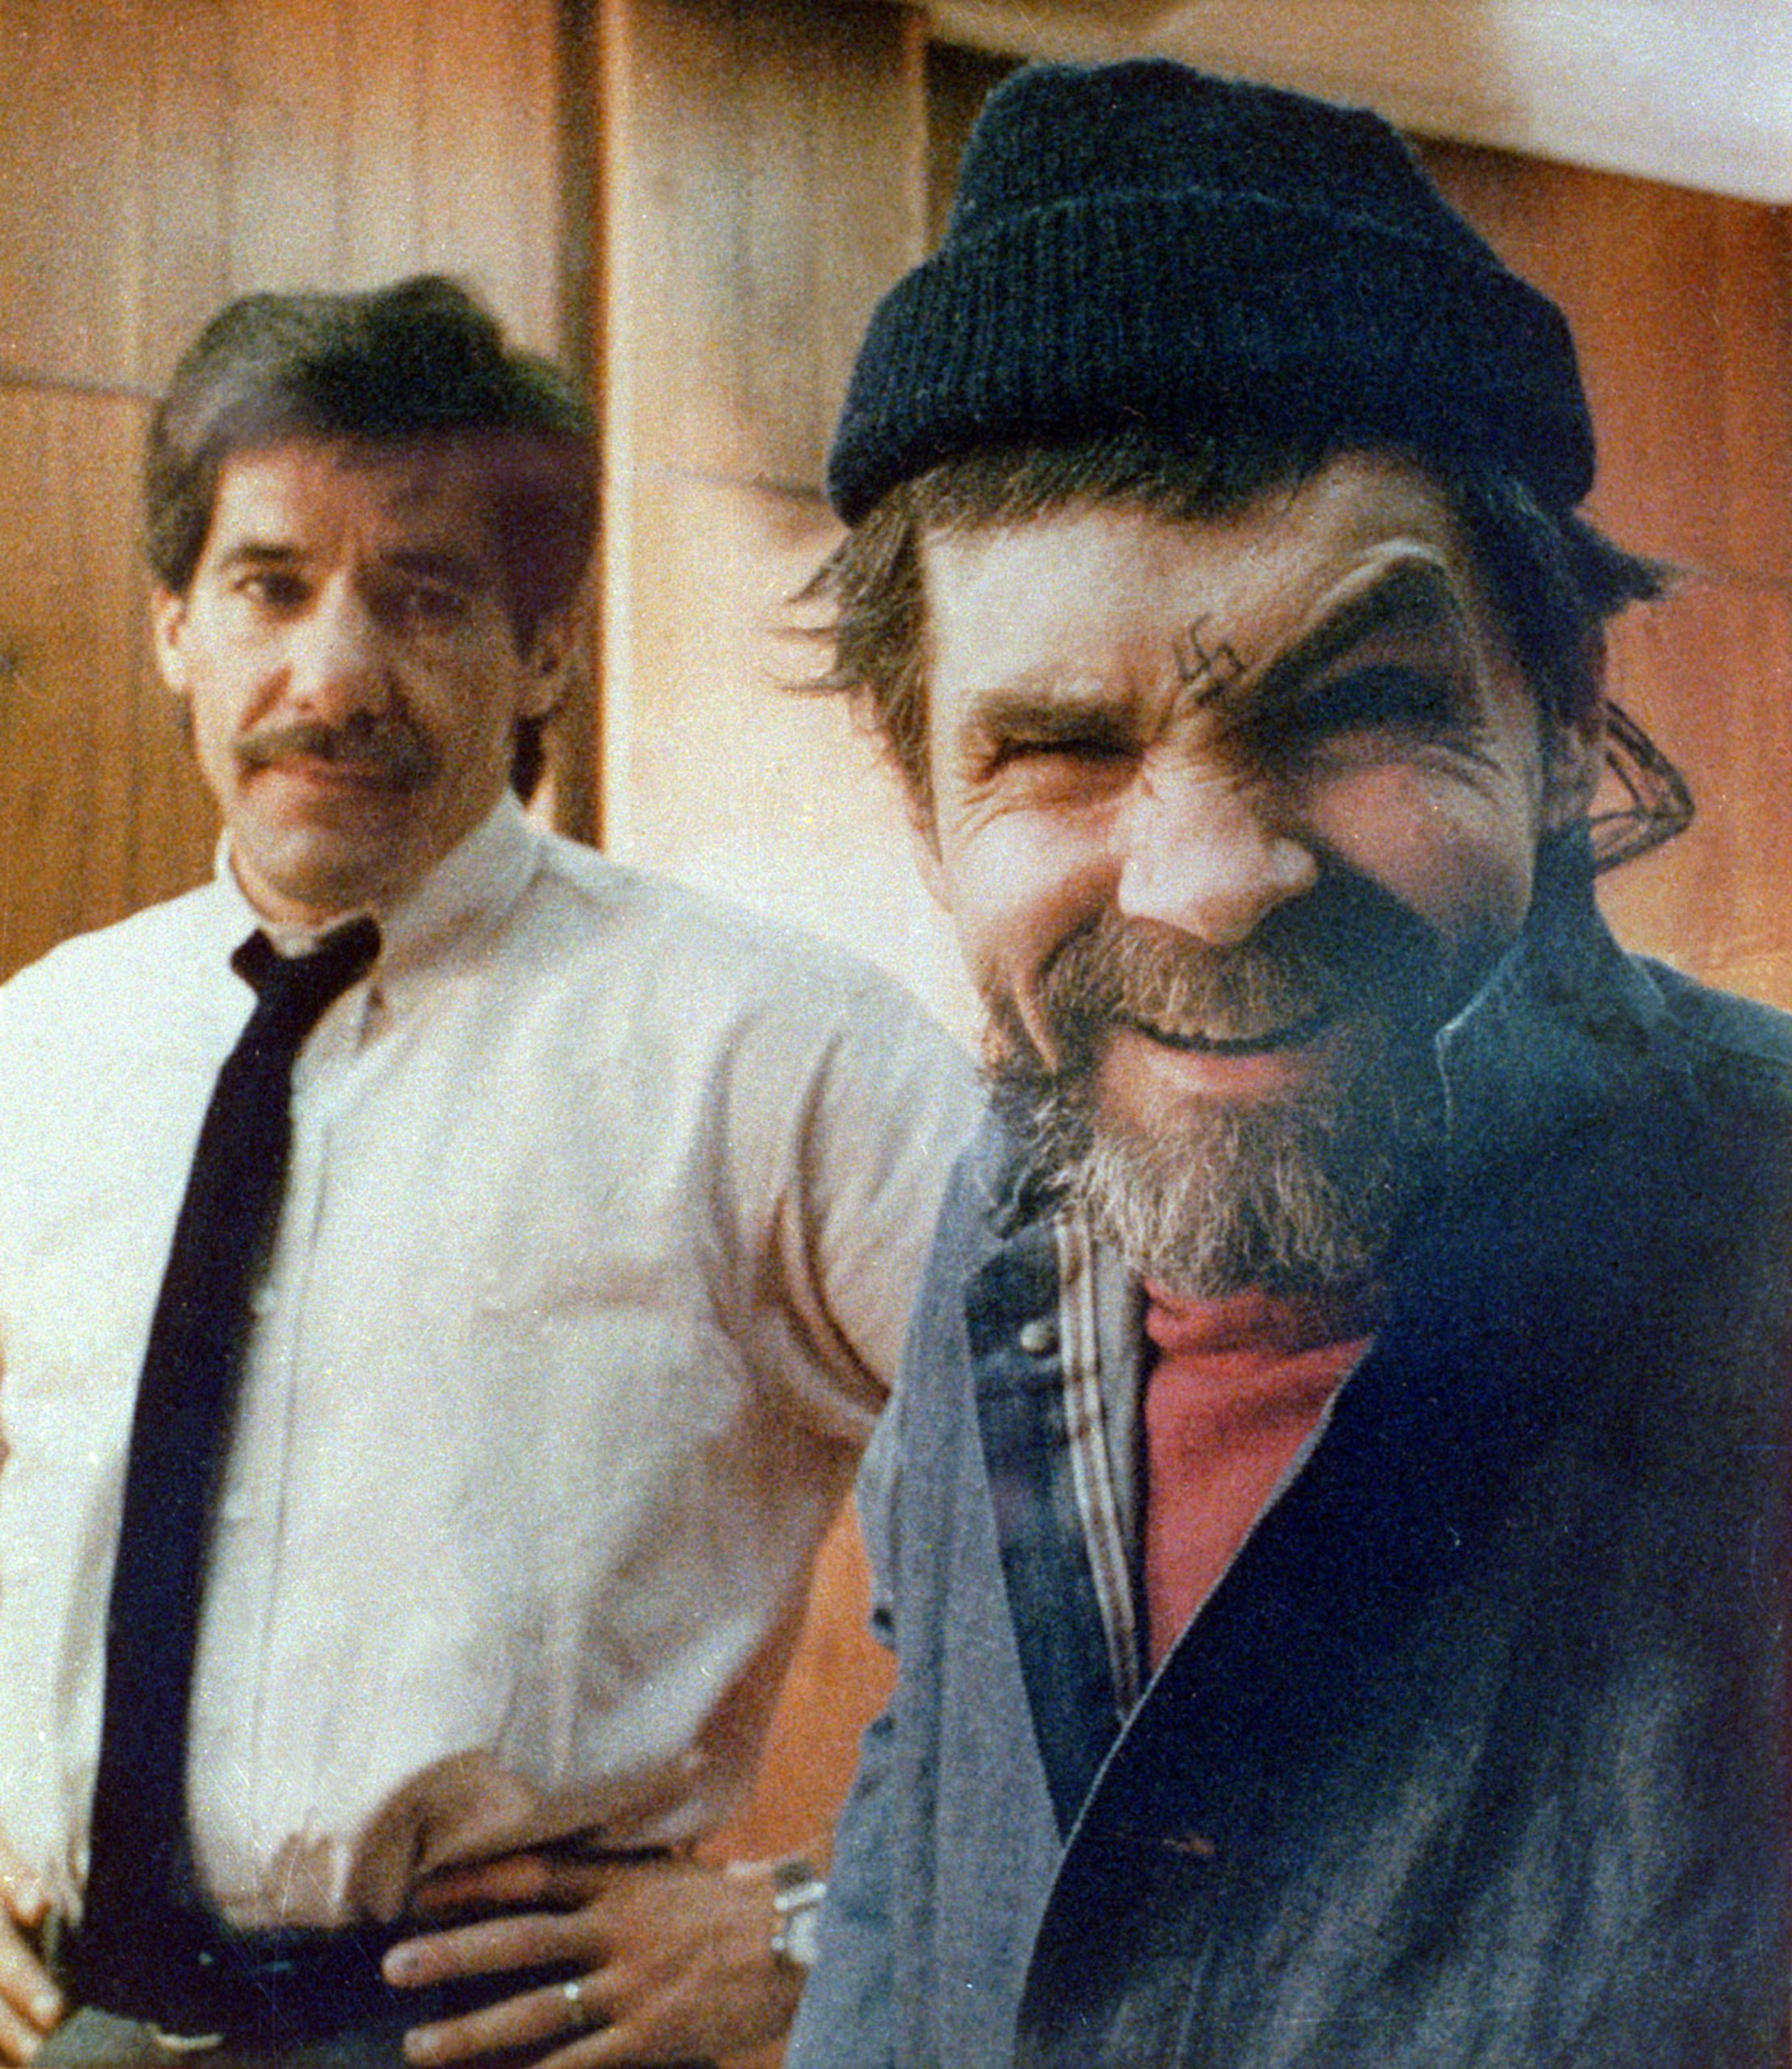 Manson mugs for the camera during a rare interview with reporter Geraldo Rivera at San Quentin Prison in California on March 17, 1988.